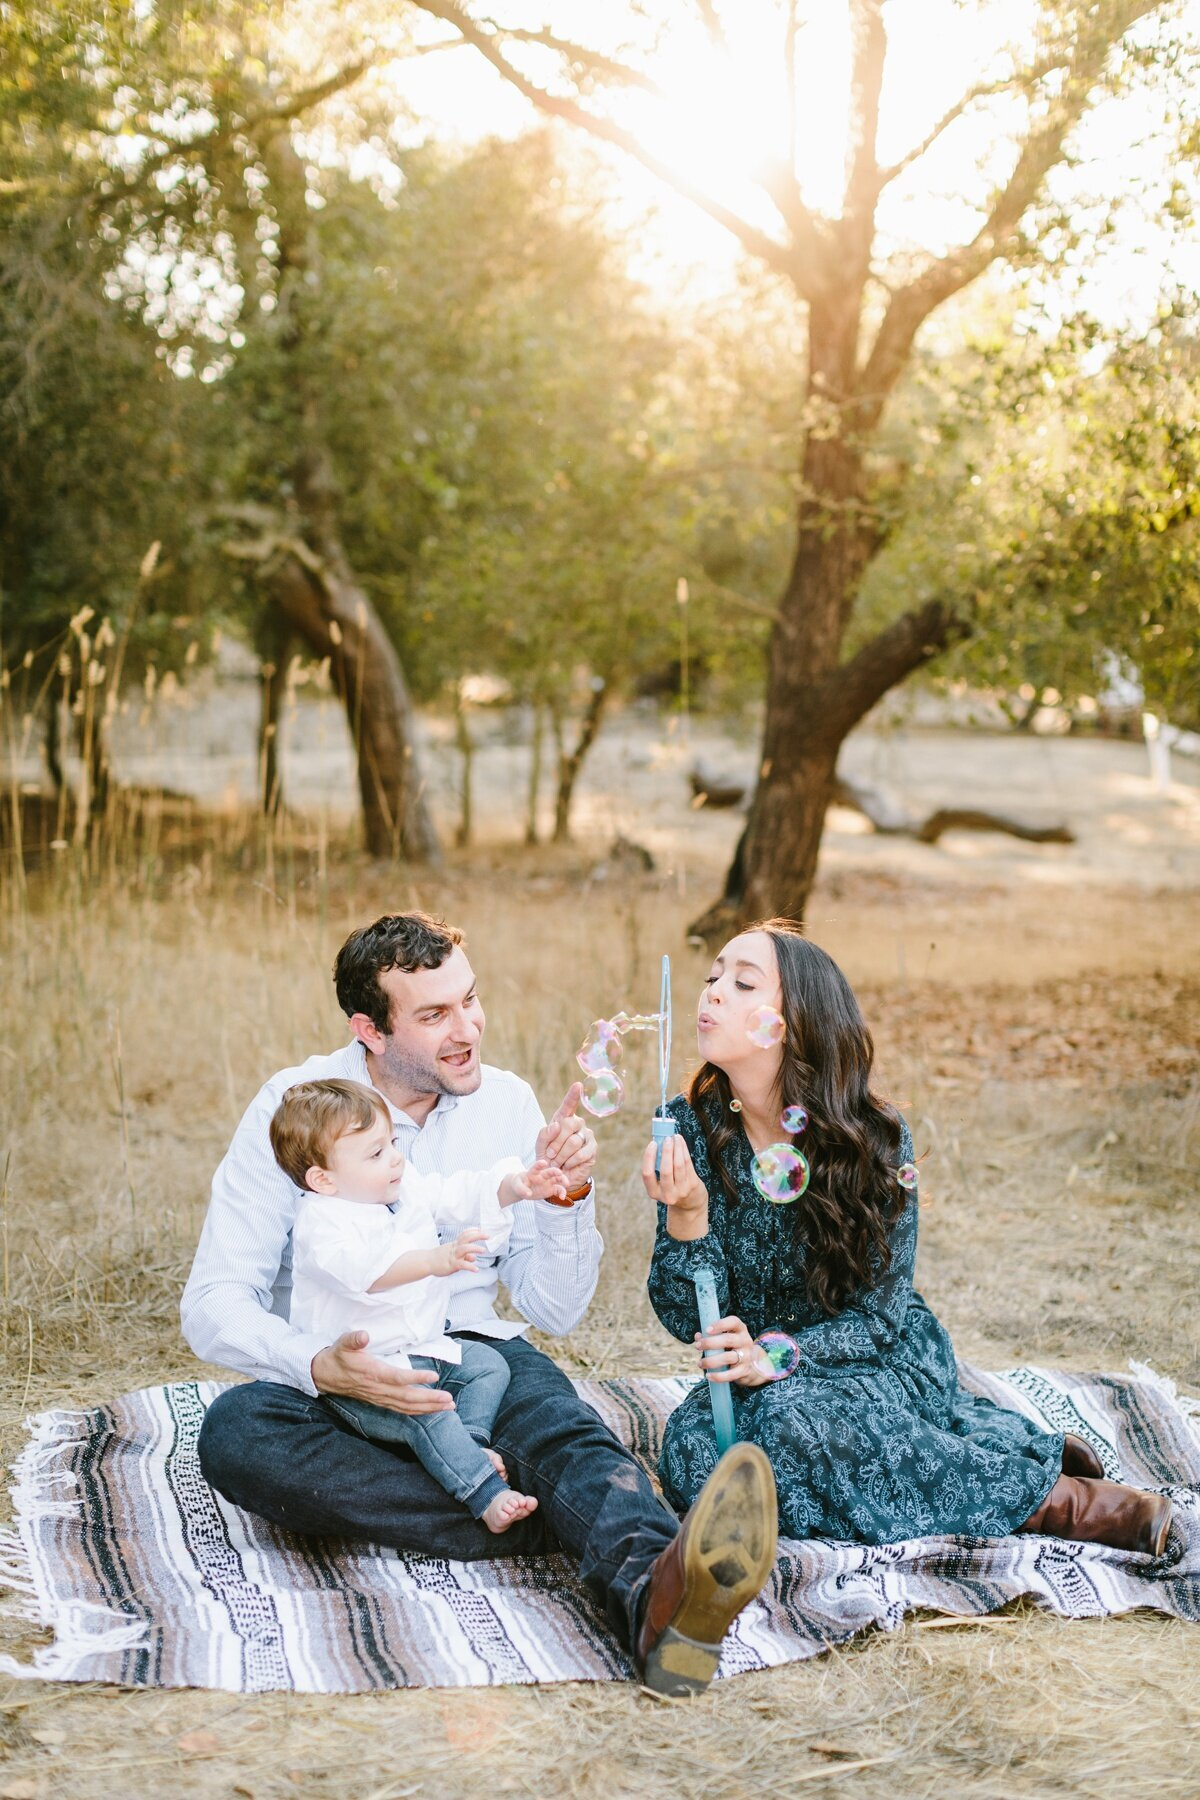 California Family Photography-Texas Family Photographer-Family Photos-Jodee Debes Photography-110